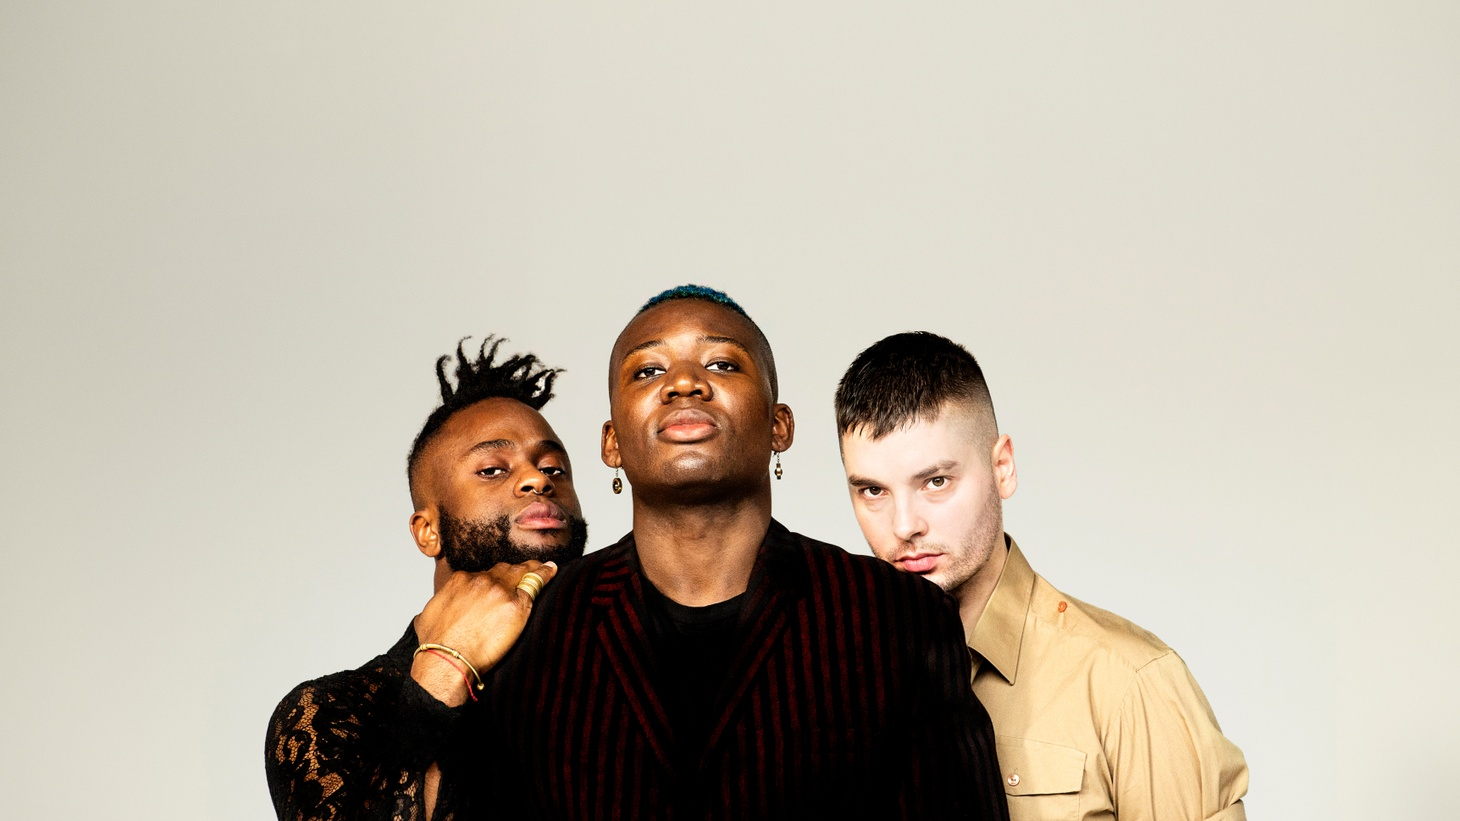 Scottish hip-hop trio Young Fathers have a new album and an enviable opportunity to play those songs on the iconic Hollywood Bowl stage, opening for LCD Soundsystem and Yeah Yeah Yeahs.